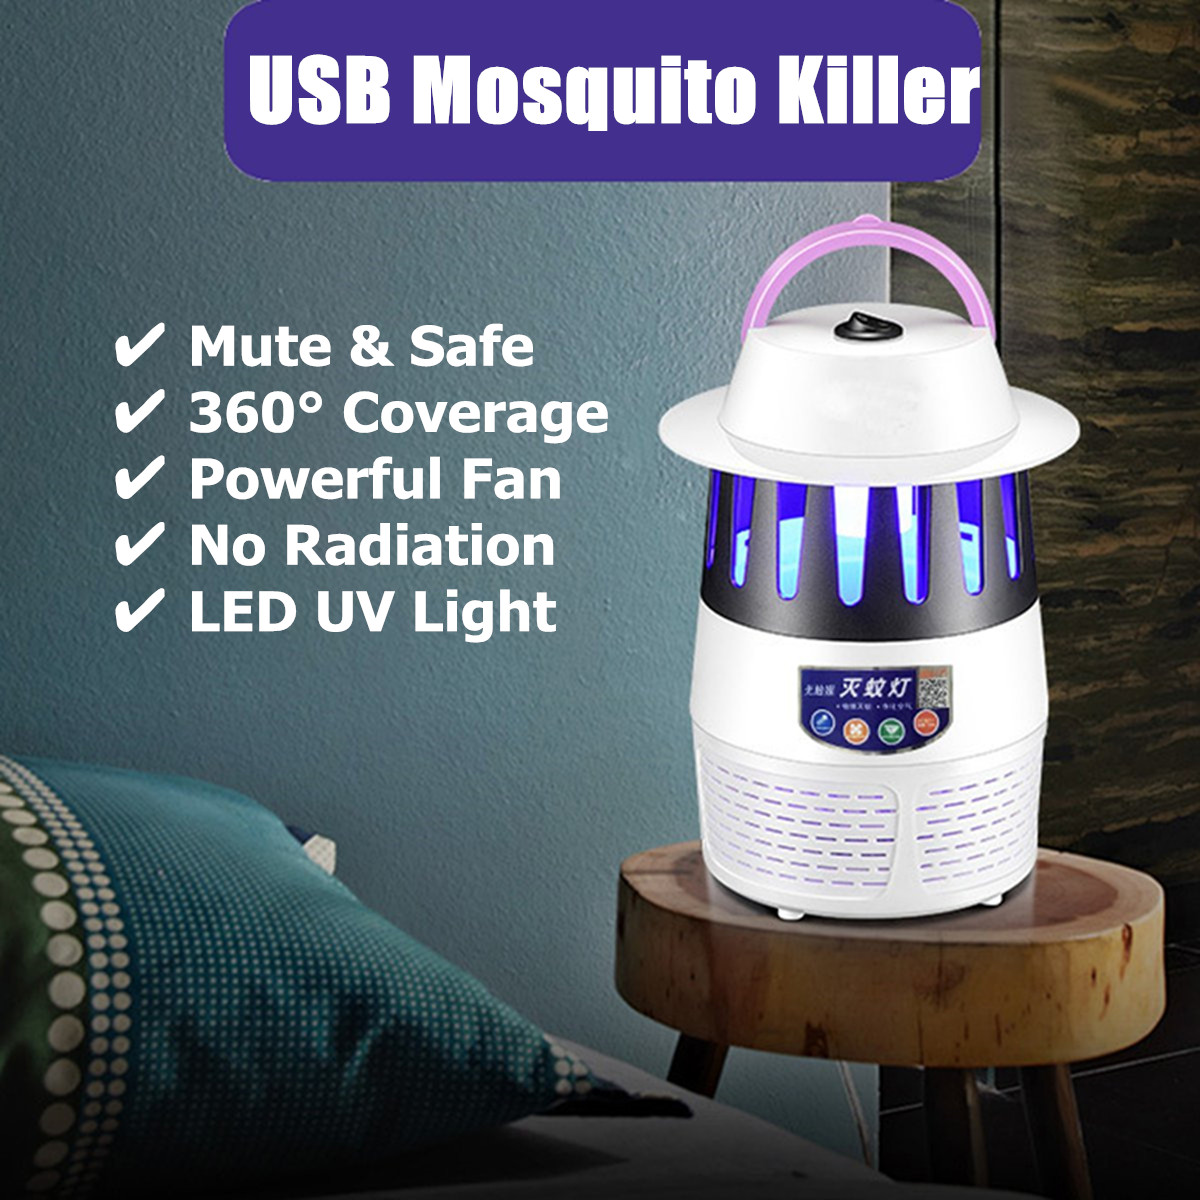 8 LED USB Mosquito Dispeller Repeller Mosquito Killer Lamp Bulb Electric Bug Insect Zapper Pest Trap Light For Yard Outdoor Camping 26